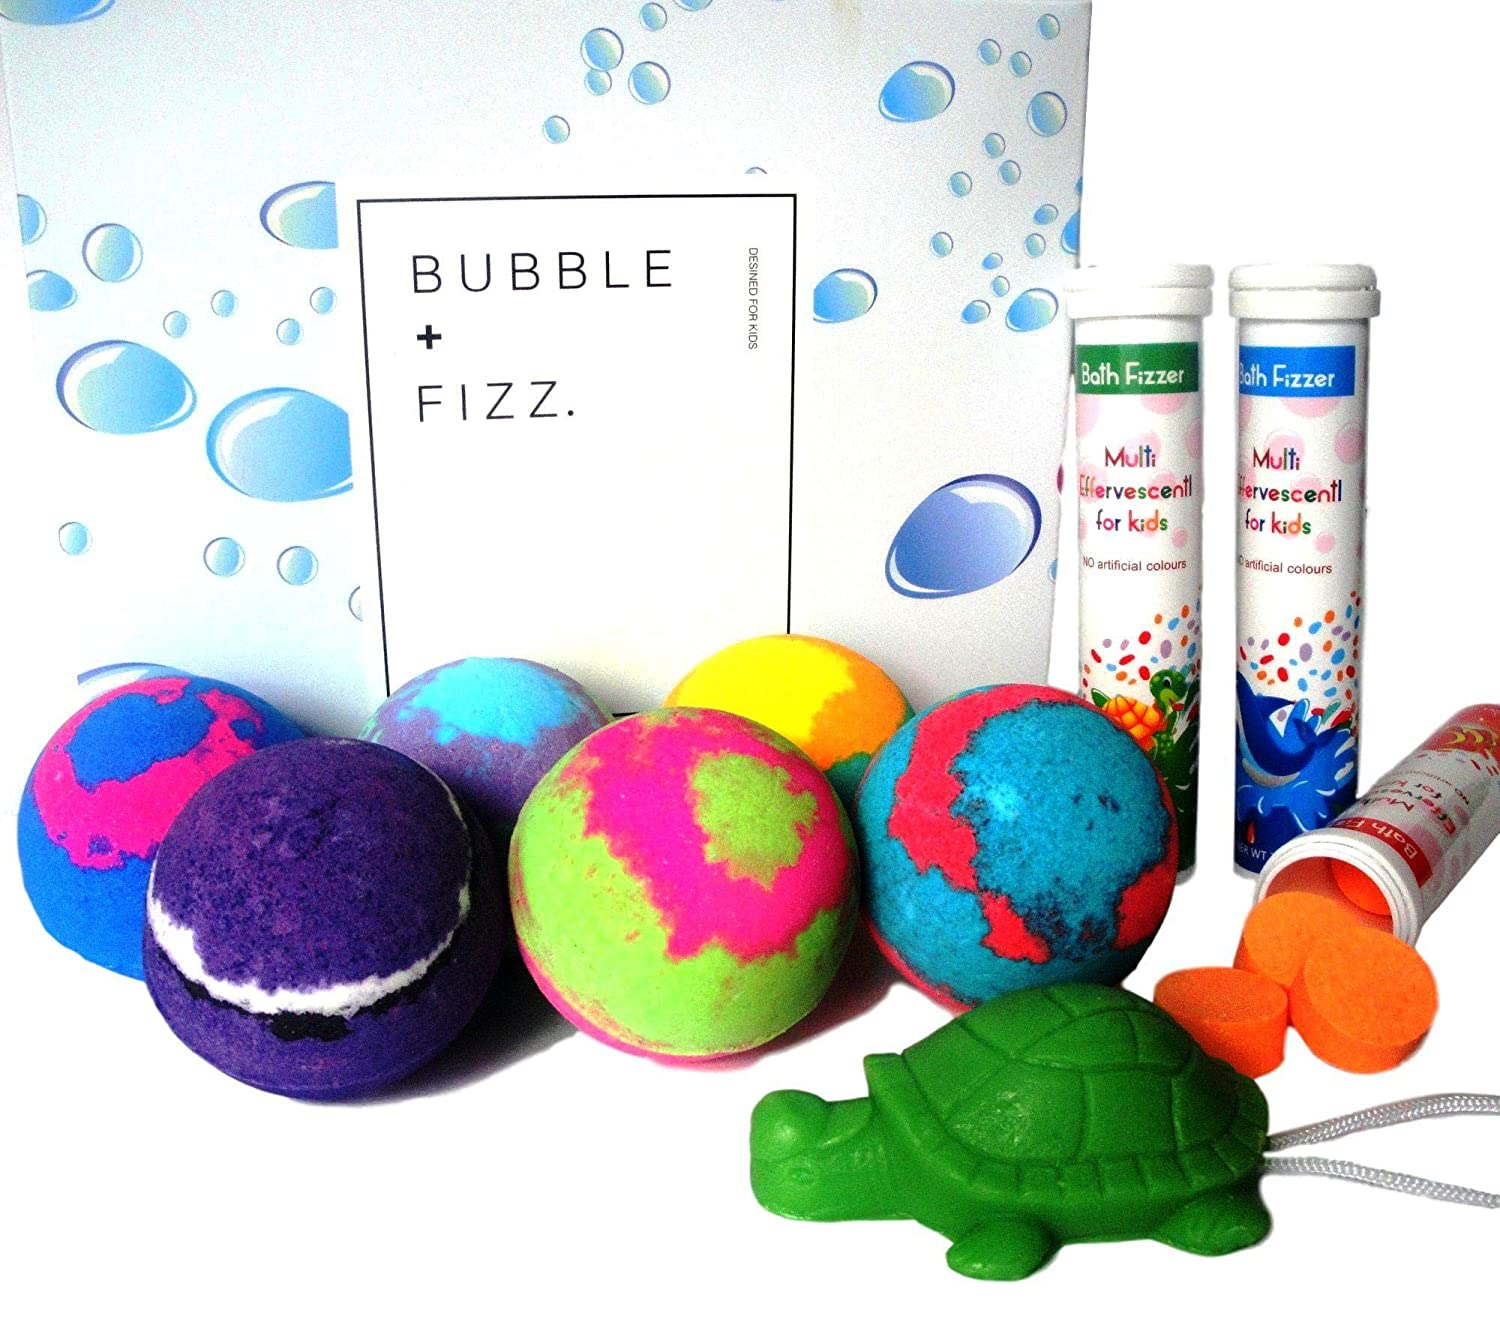 KIDS BATH BOMBS WITH A SURPRISE TOY INSIDE & FIZZ FUN SET Colored XL Bath Bombs, Kid Safe, Gender Neutral with Organic Essential Oils – Handmade Organic Bubble Bath Fizzy (6 bath bombs with a toy inside, 3 bottles of fizz tablets,1 hand made soap)